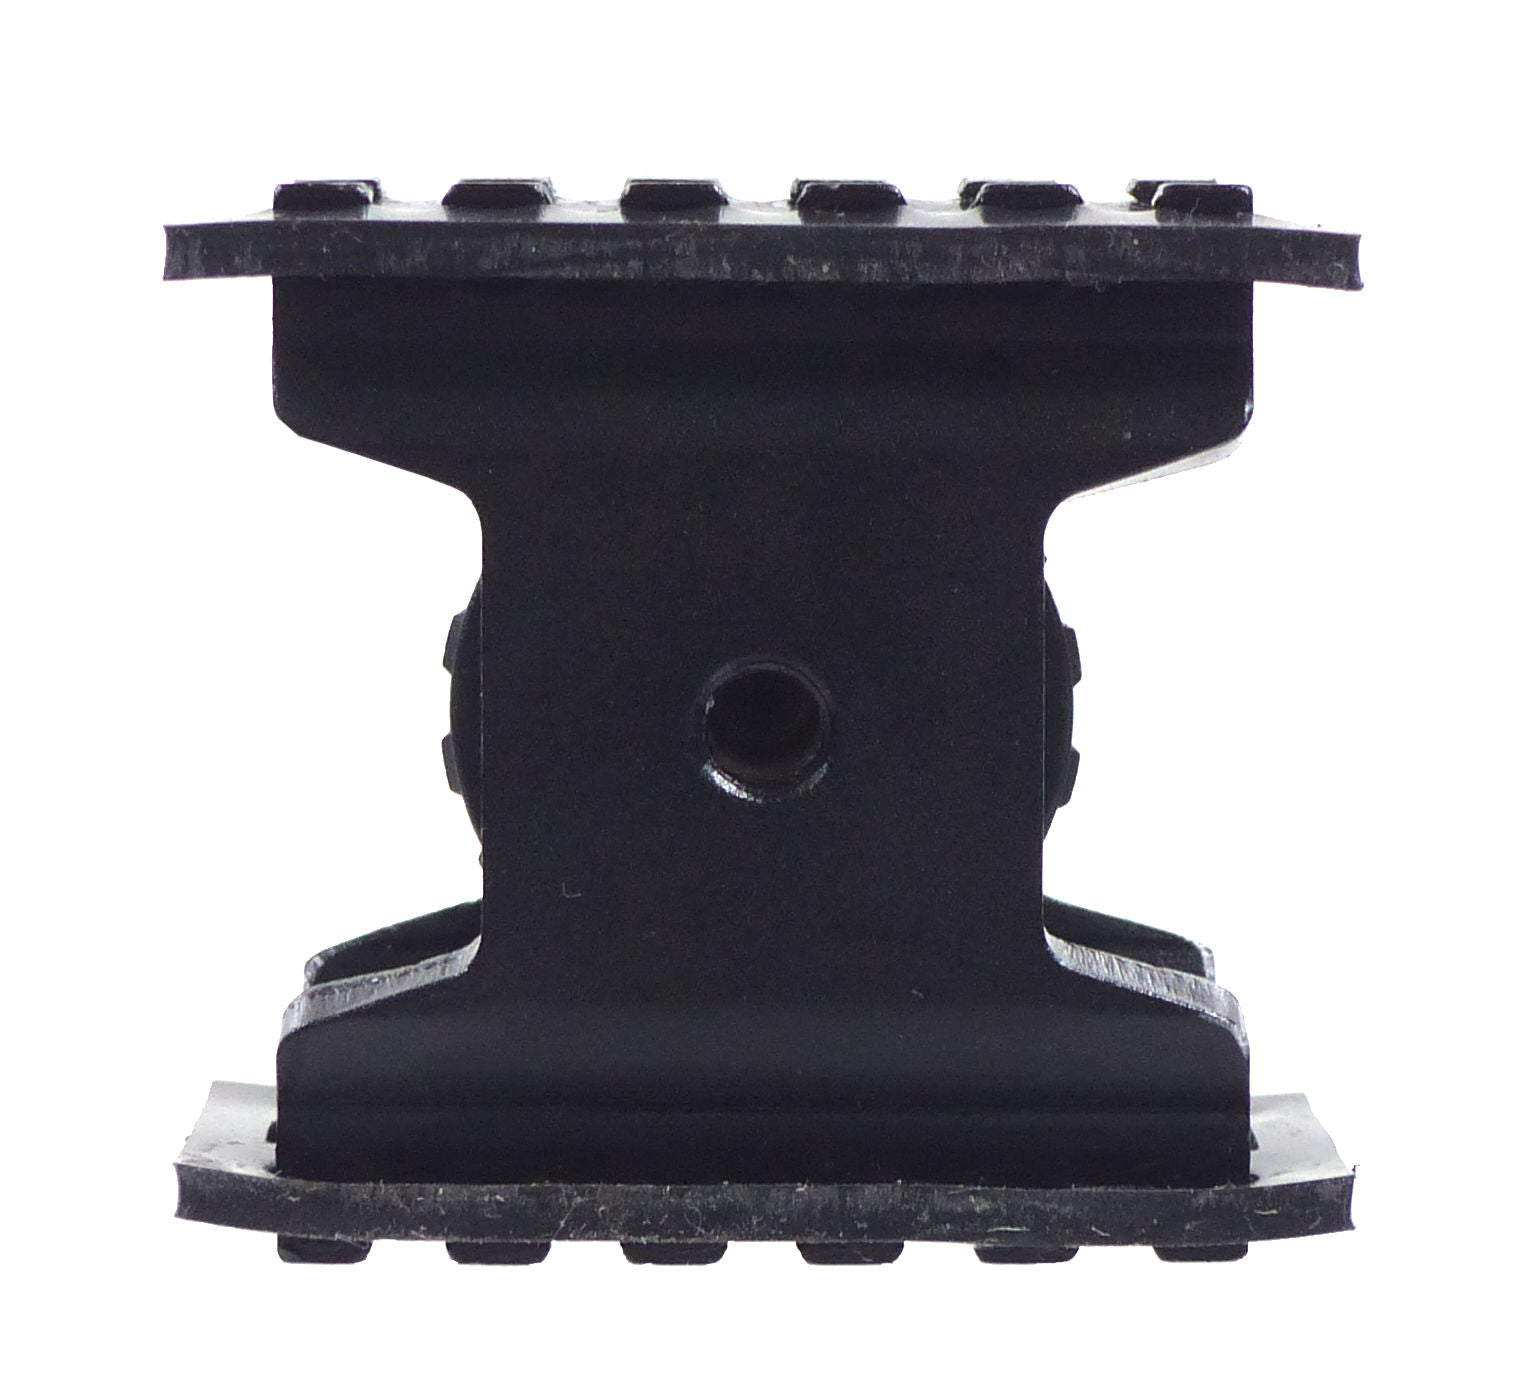 ALZO Audio Recorder Rubber Shock Mount for Zoom H4N, H4N PRO, H5, H6